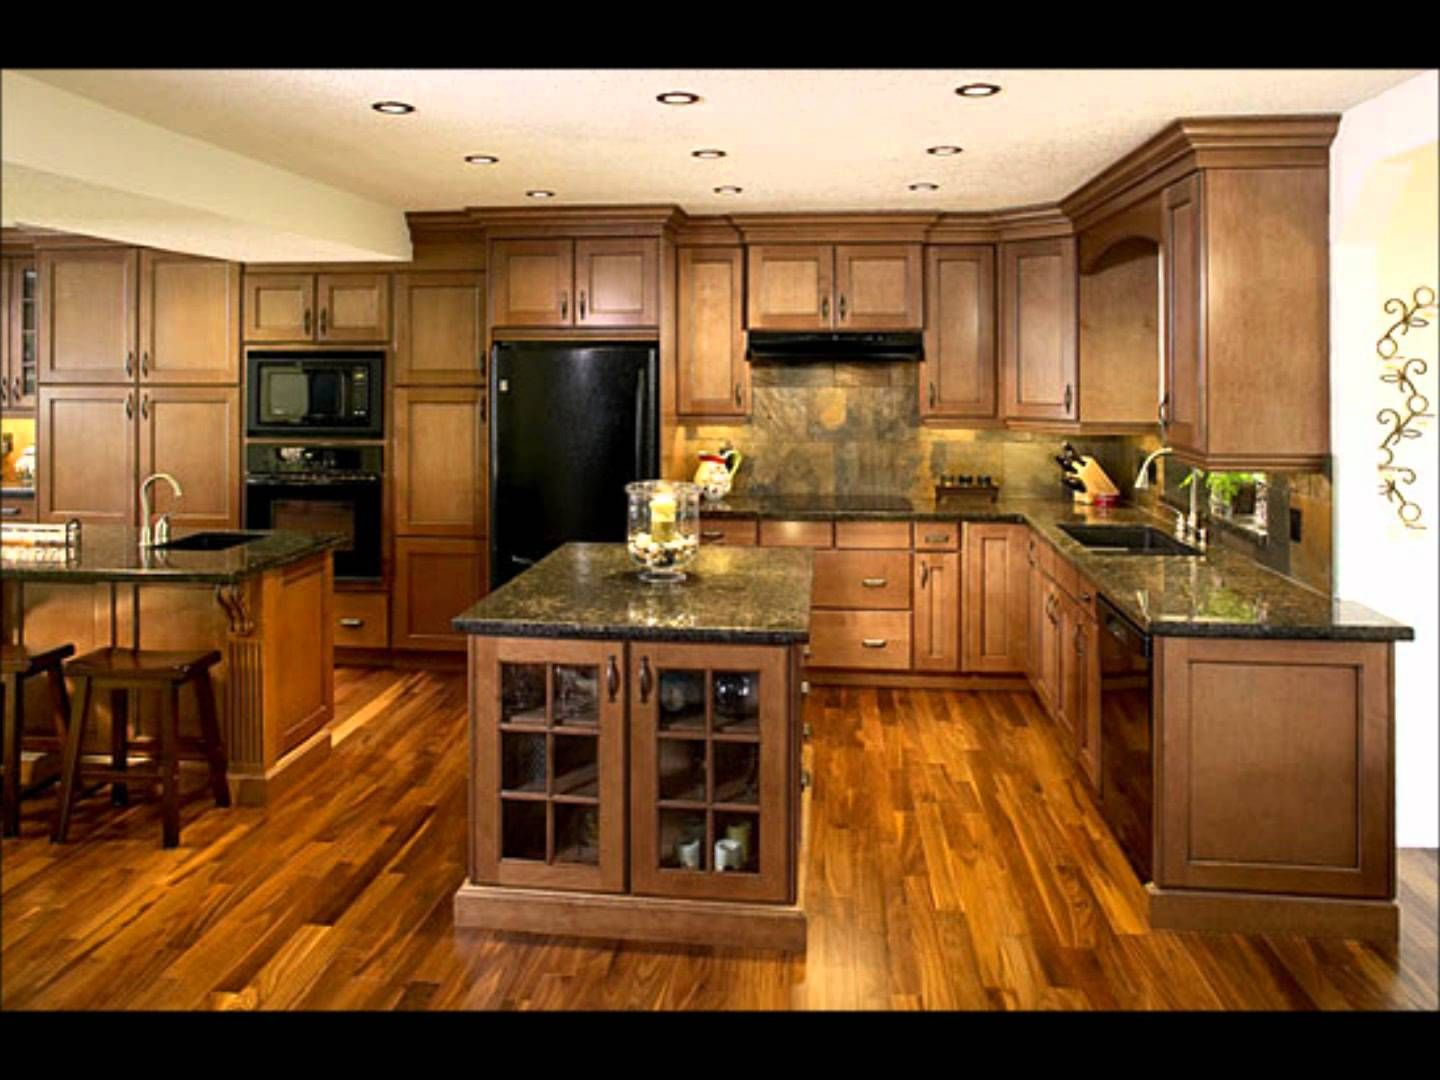 Apartment Kitchen Renovation Small Kitchen Remodel Brilliant Tiny Apartment Kitchen Transform